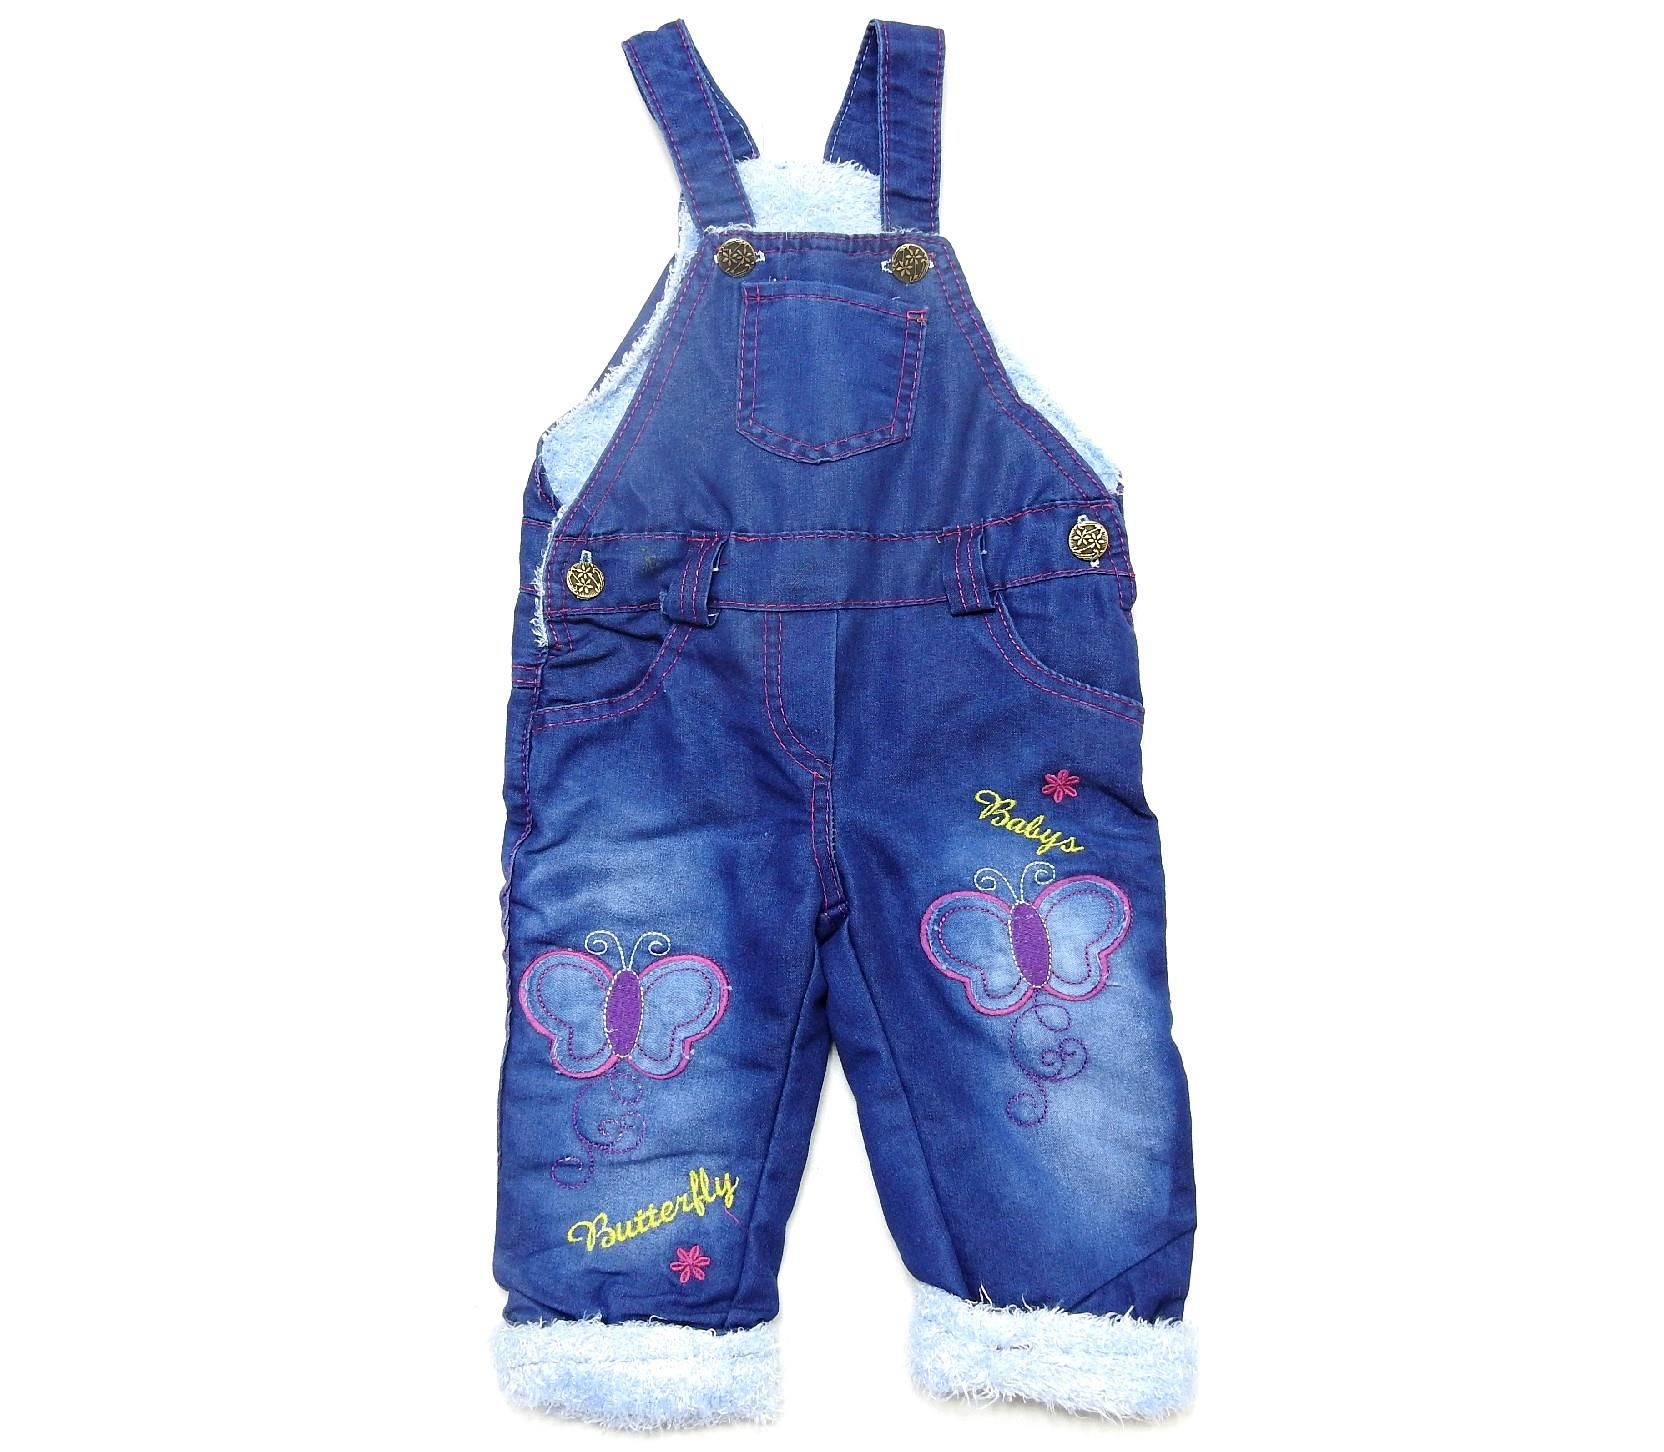 93214 wholesale patterned faux shearling suspended jeans overalls for kids (1-2-3-4 age)